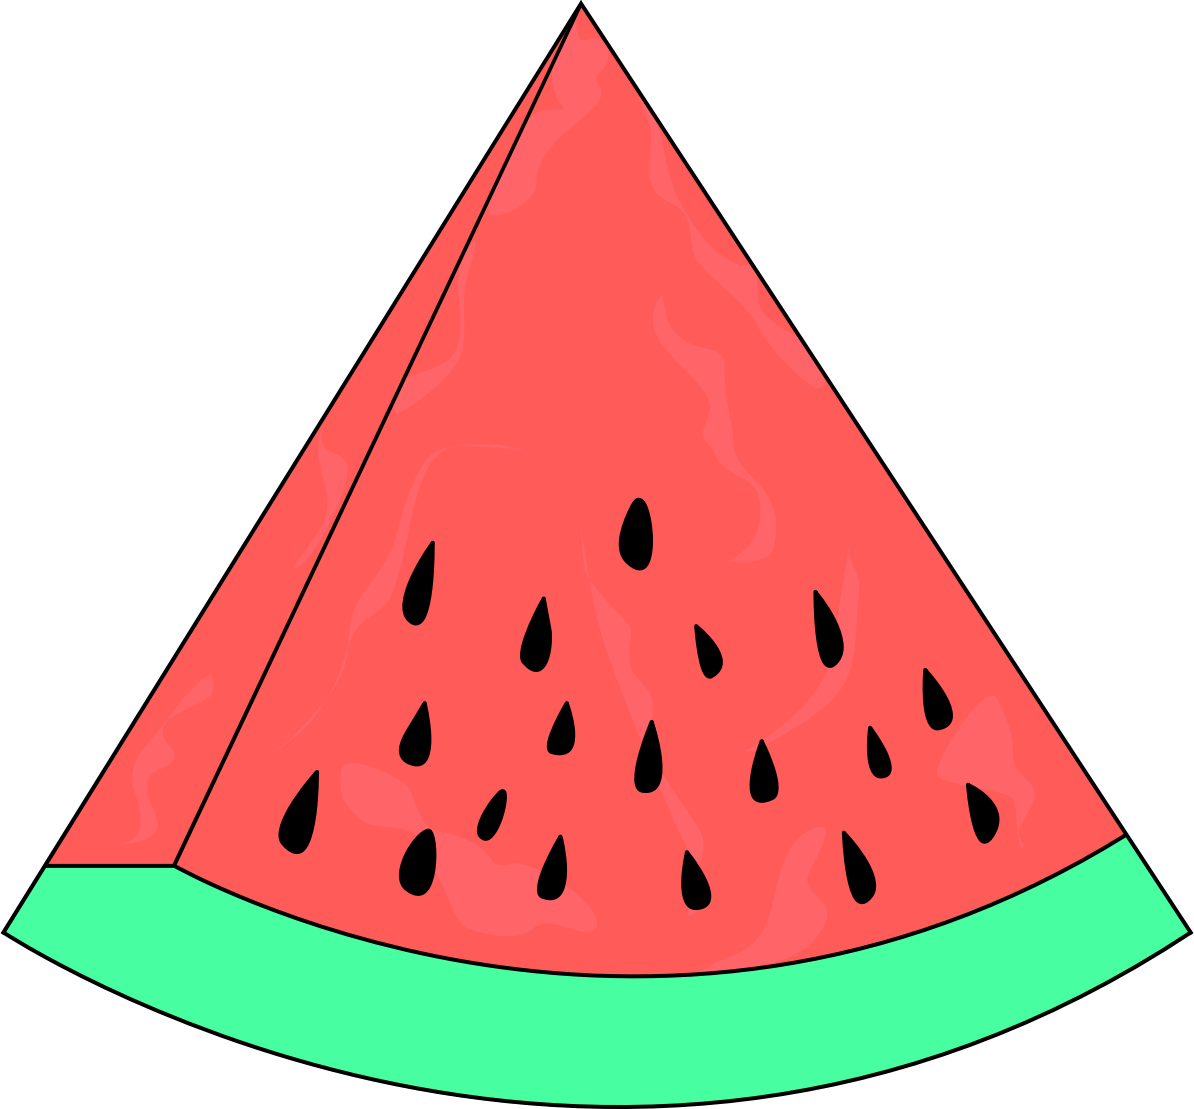 Popular items for watermelon clipart on image 5 - Clipartix (1194 x 1109 Pixel)